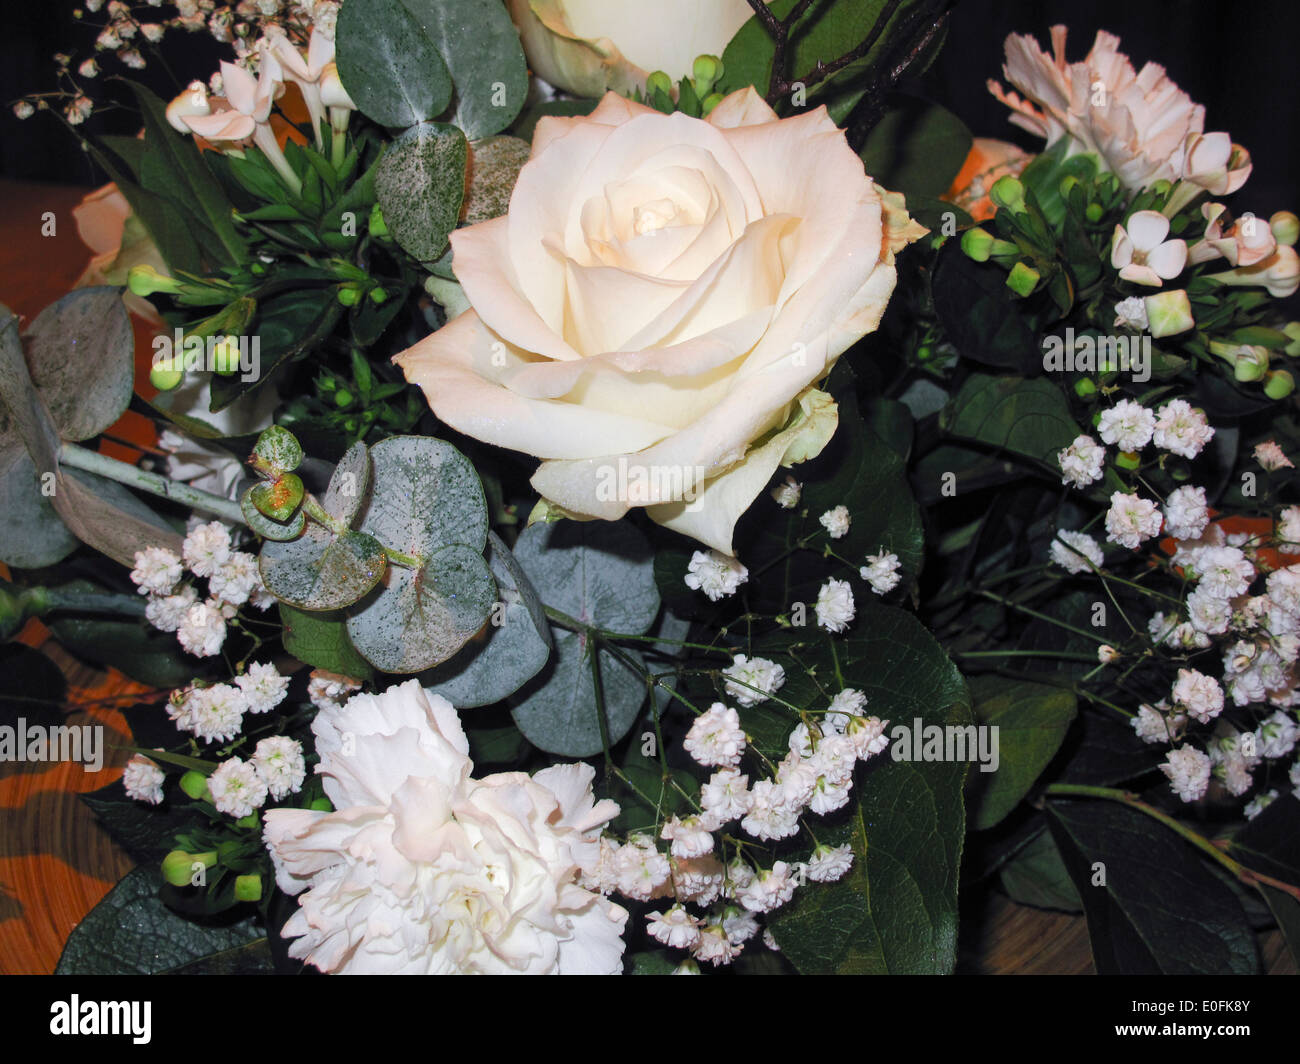 Flower Arrangement With White Roses Stock Photo 69185899 Alamy